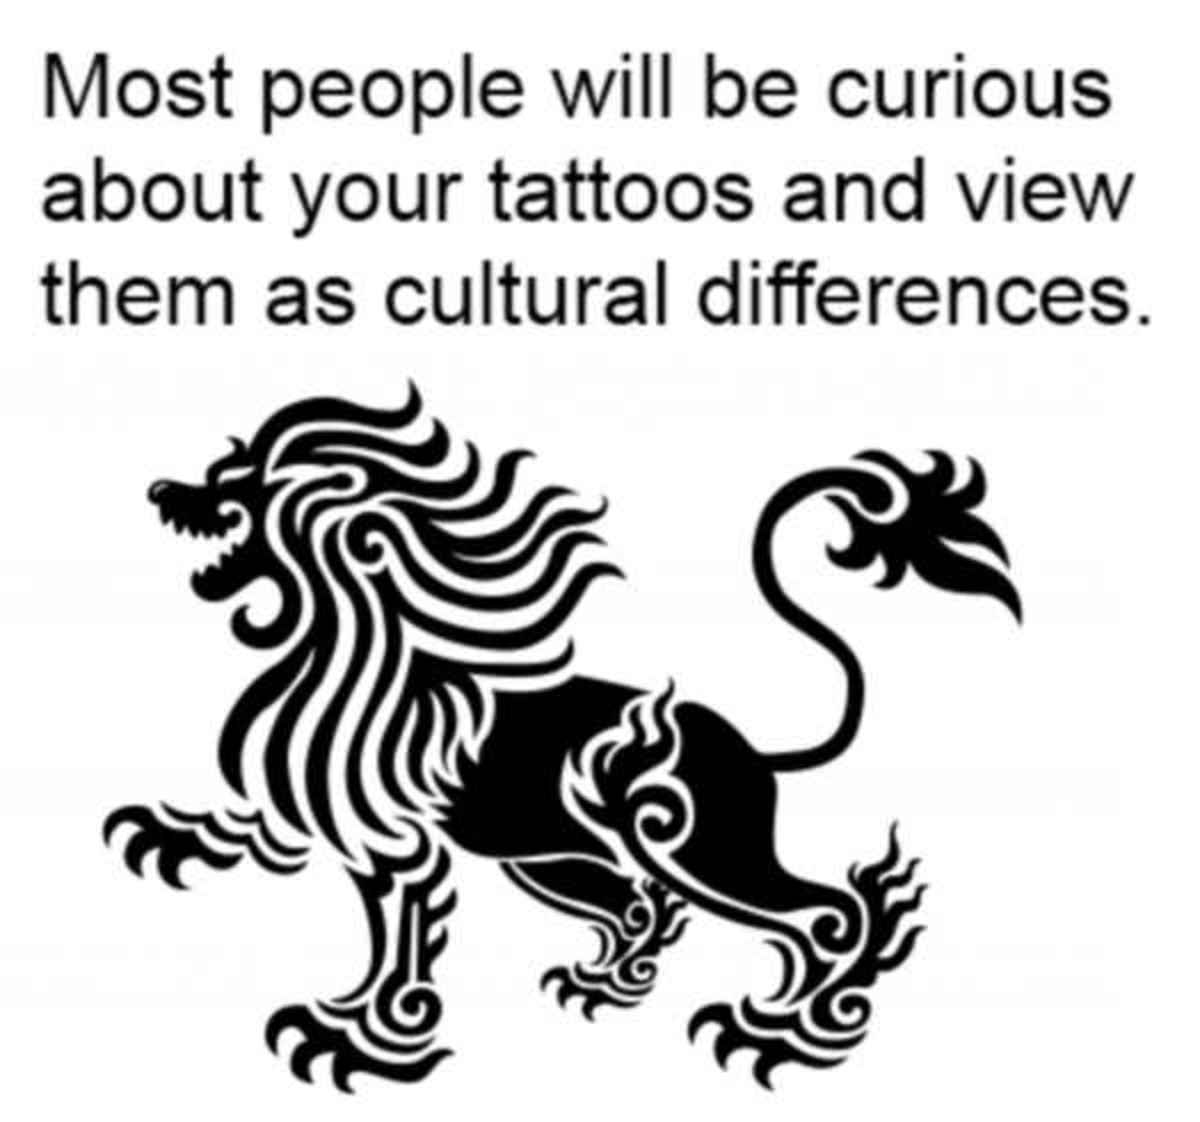 A lion design tattoo.